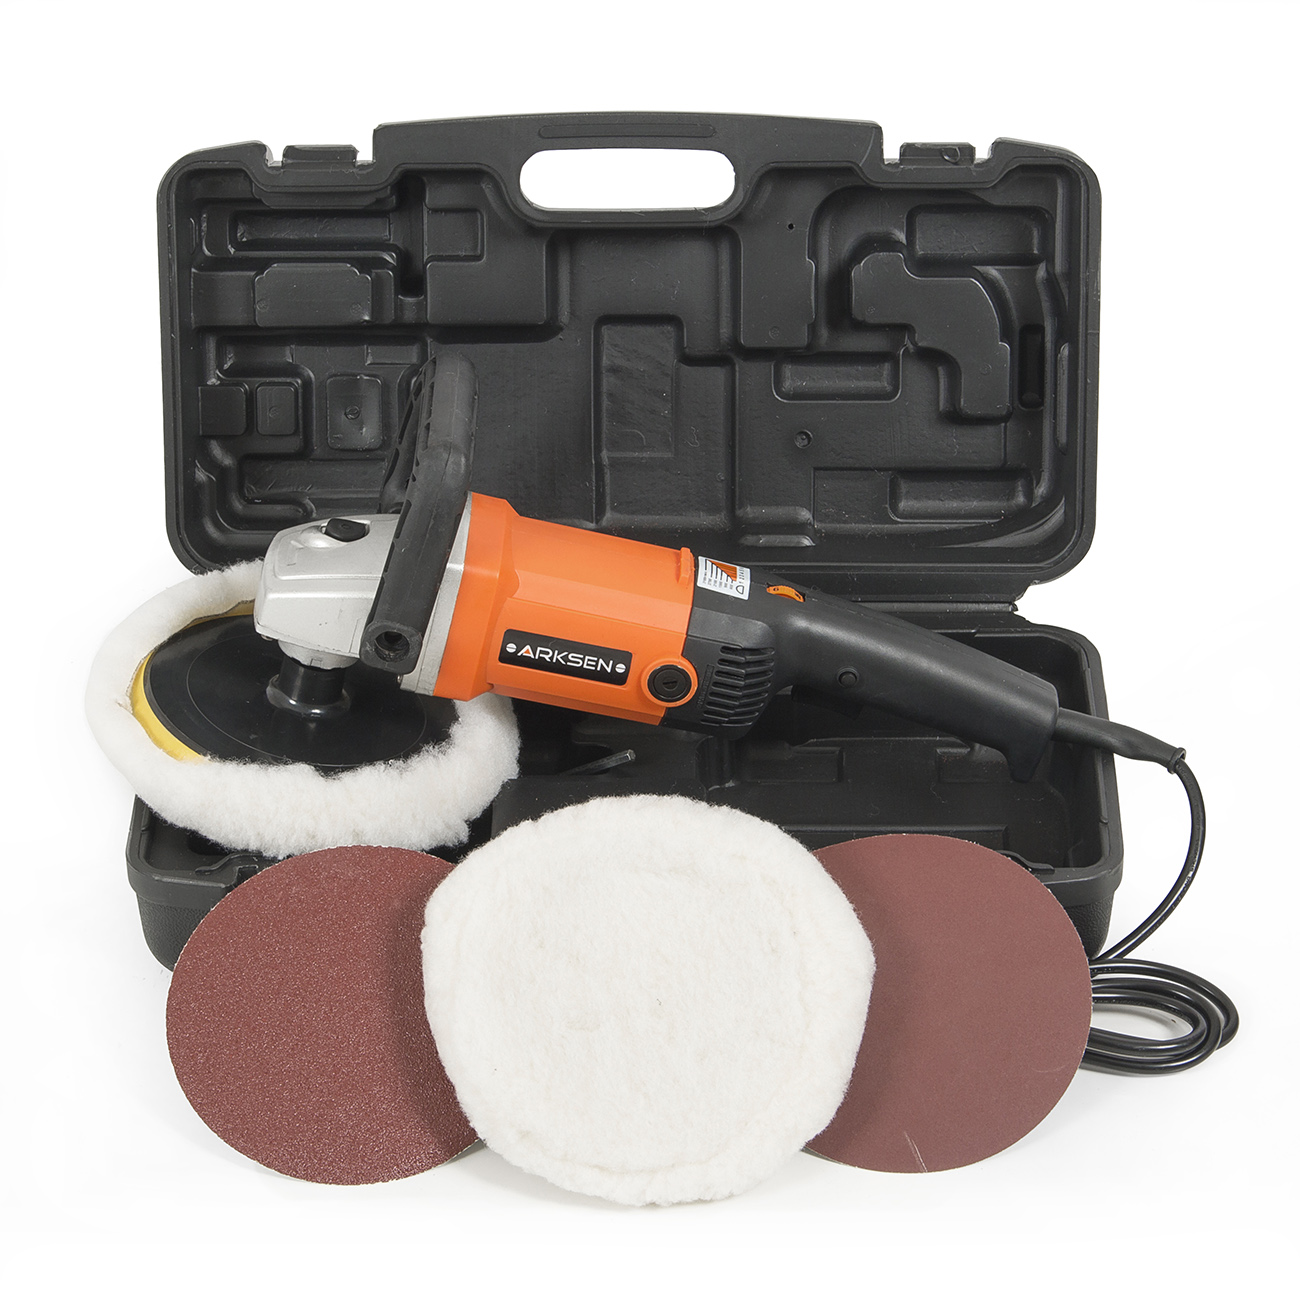 "Arksen 7"" Electric Car Polisher, Variable Speed, Buffer, Sander, Orange by ARKSEN"